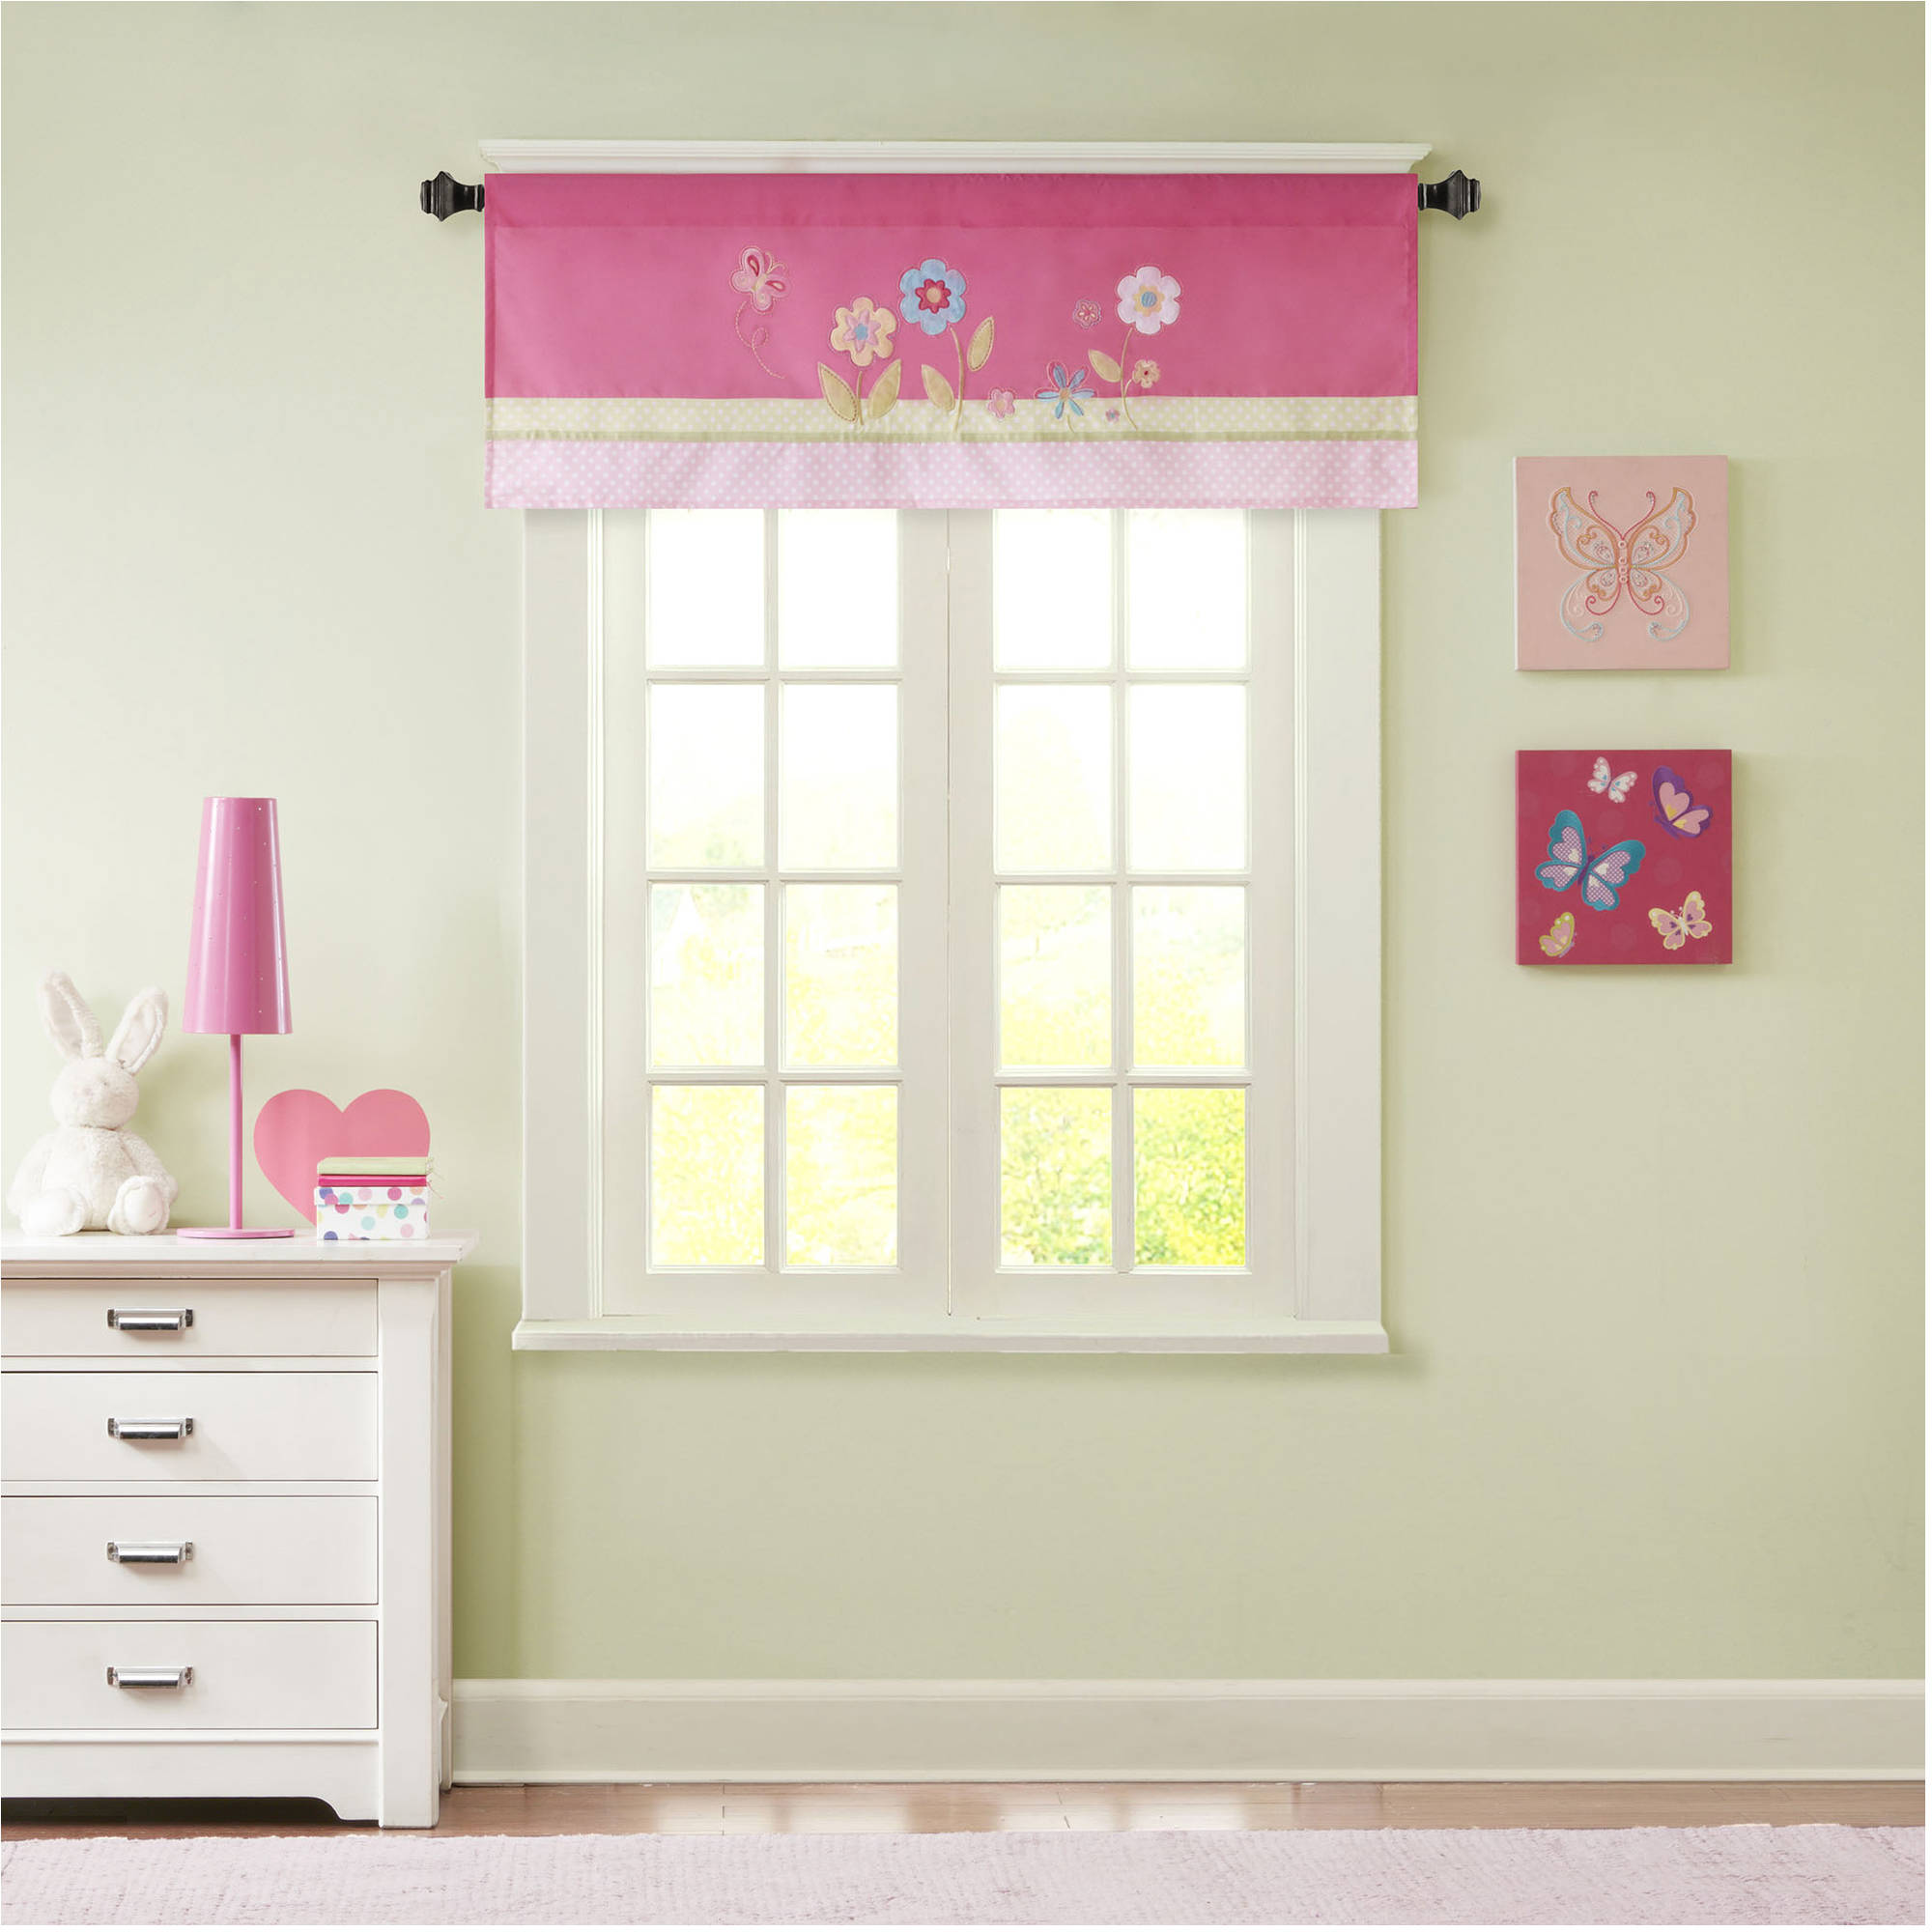 Home Essence Kids Blossoms Printed and Applique Valance